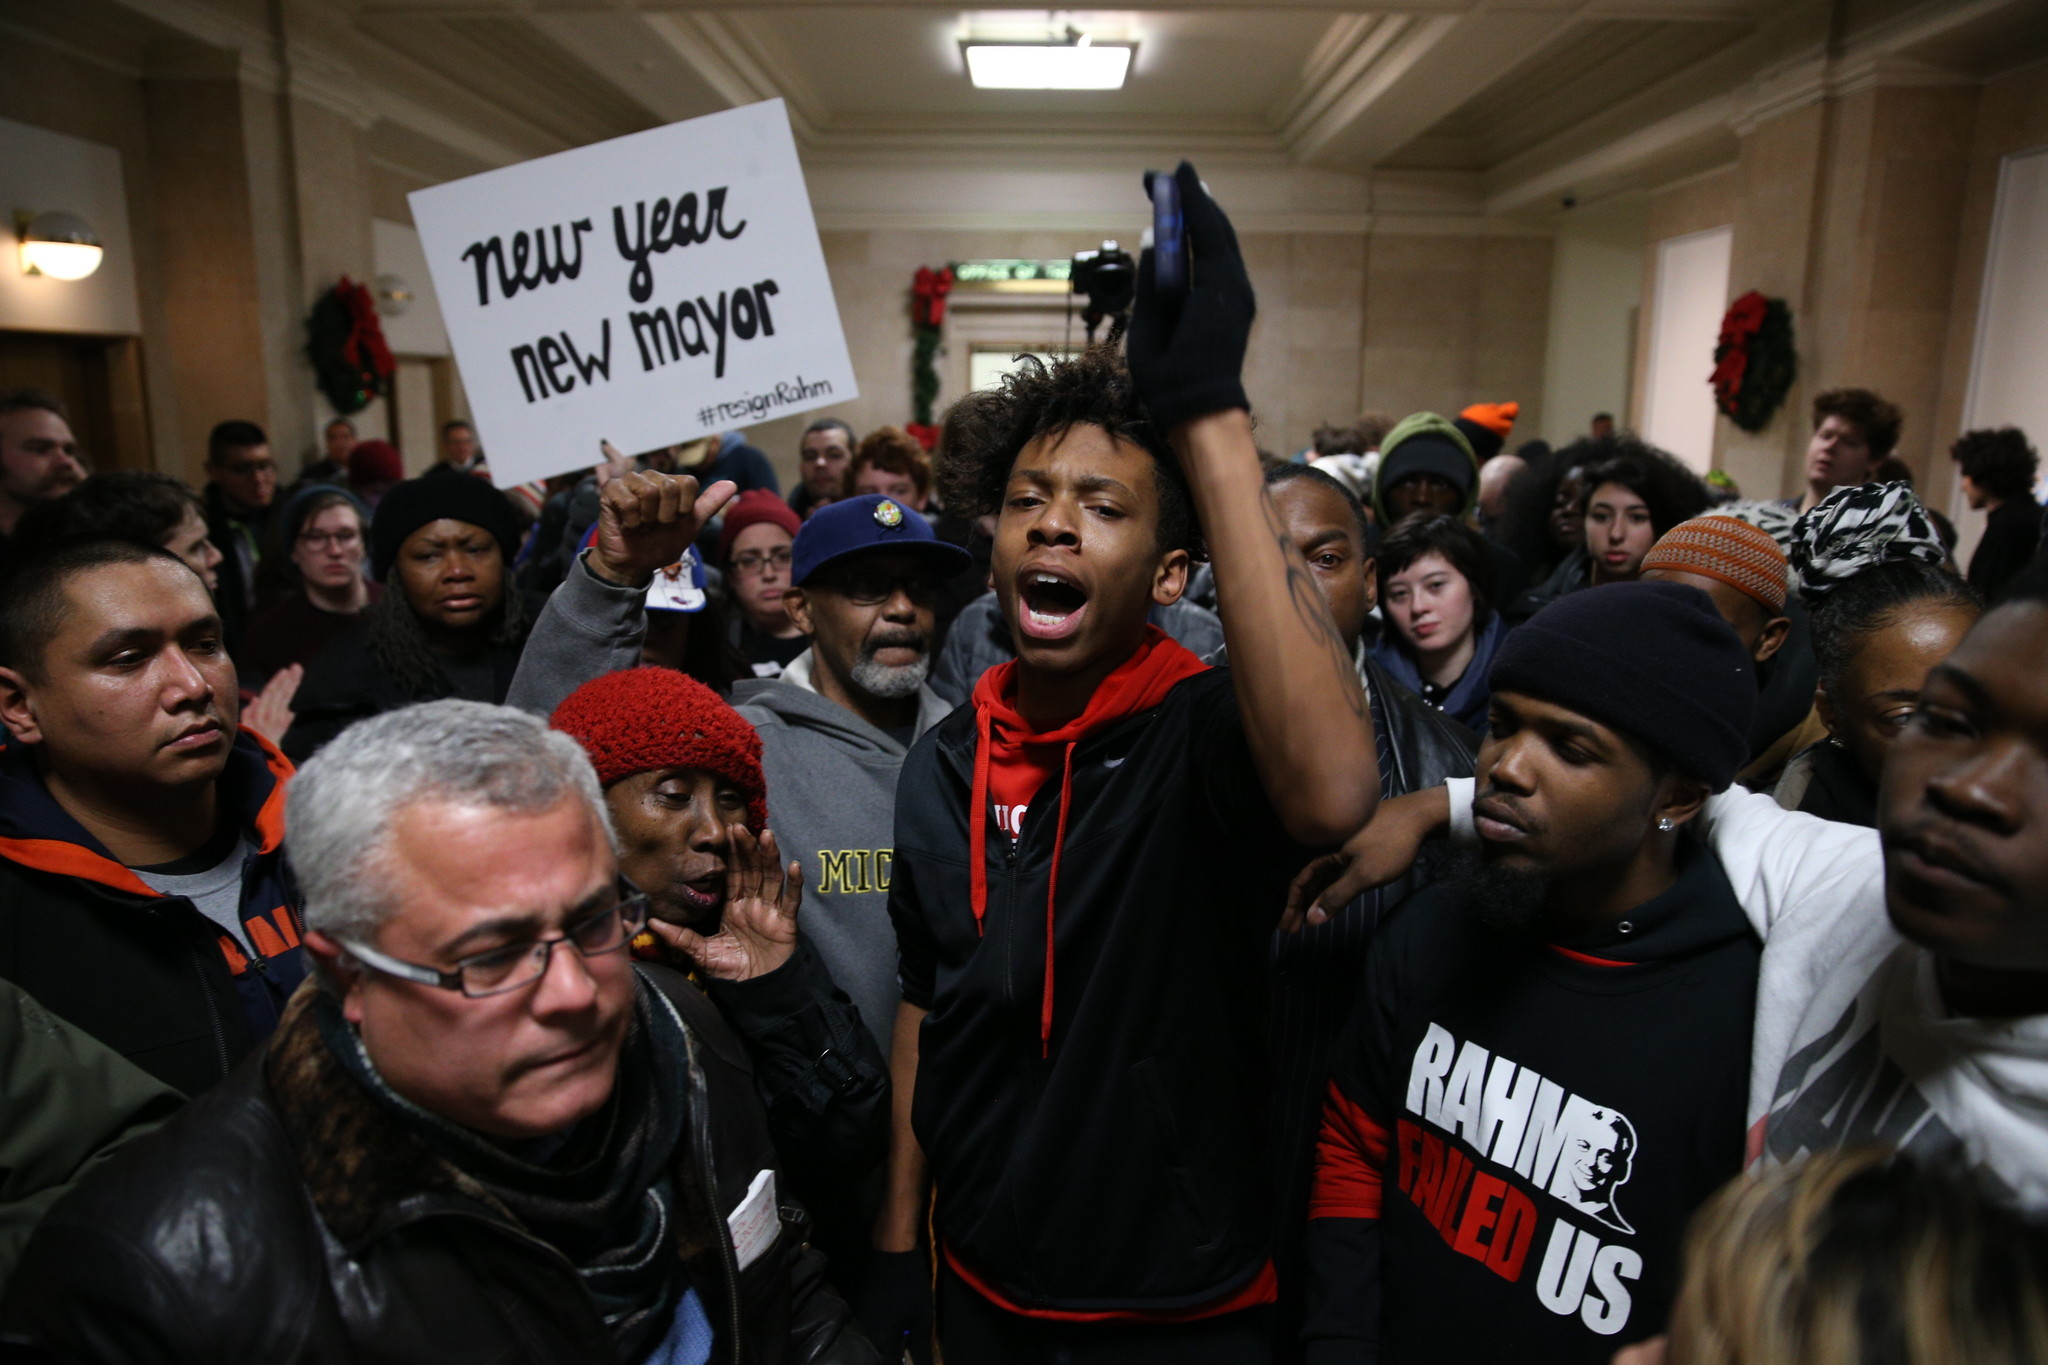 New emails show Emanuel City Hall scramble on Laquan McDonald shooting